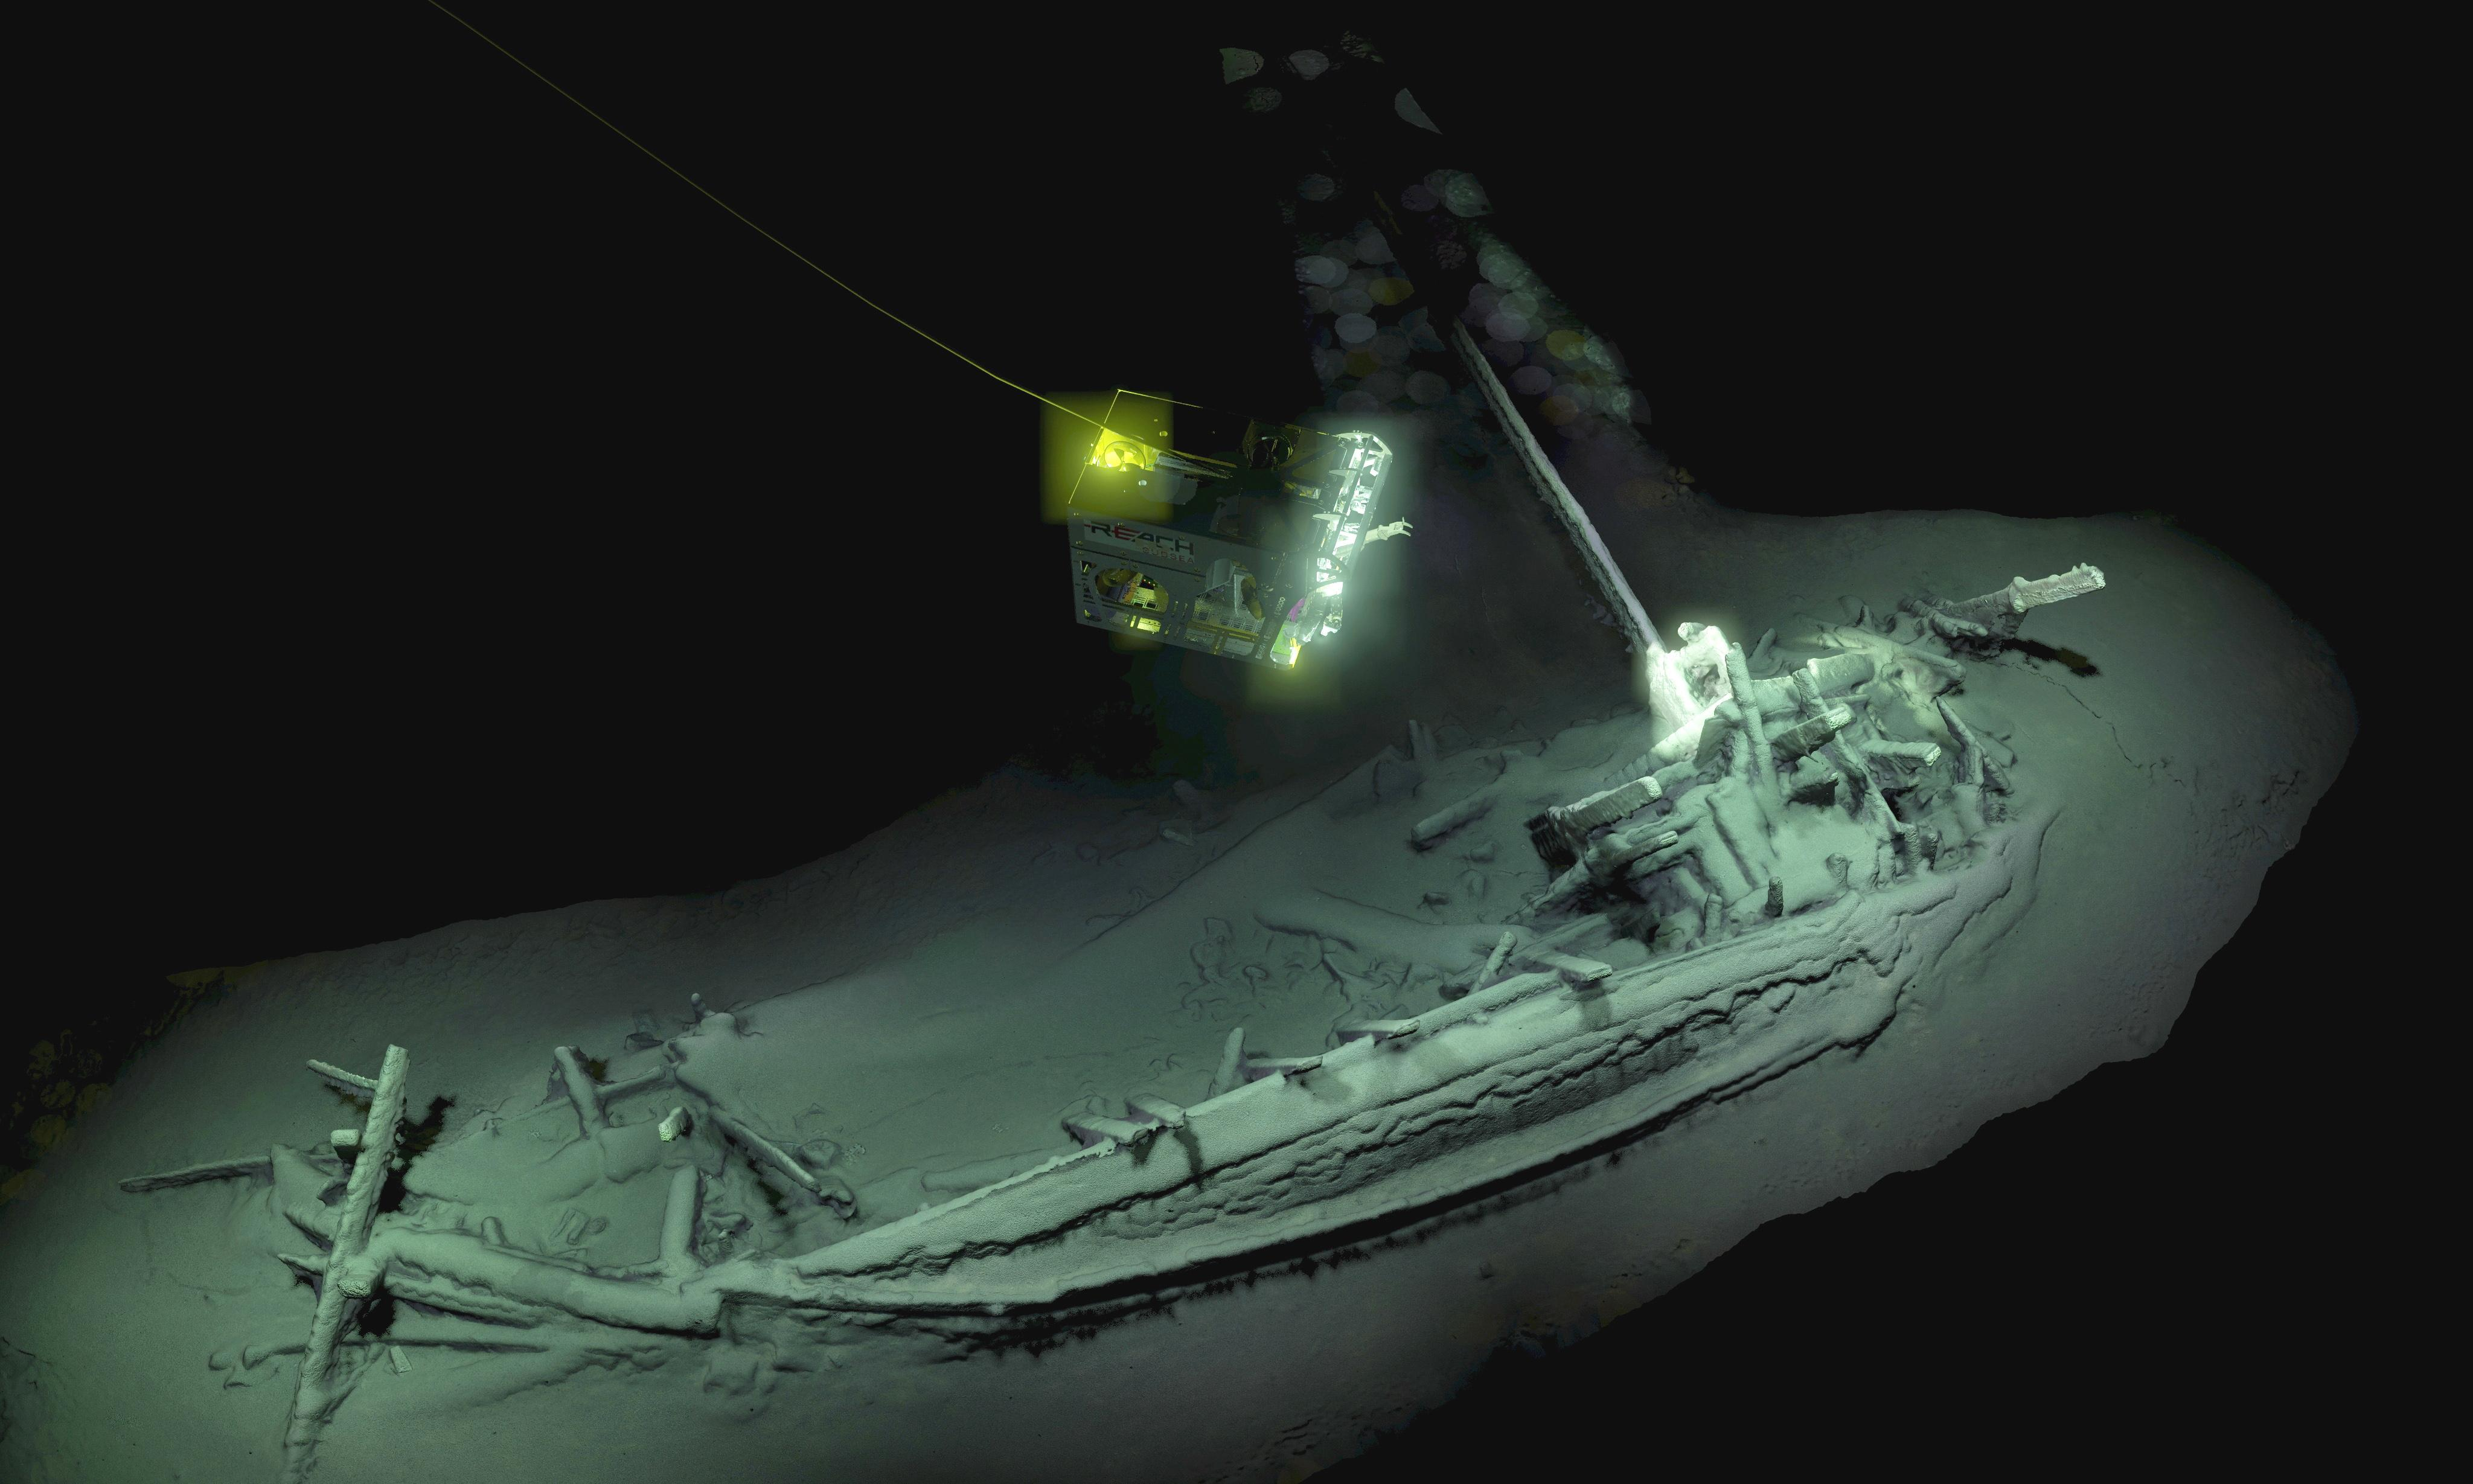 World's oldest intact shipwreck discovered in Black Sea